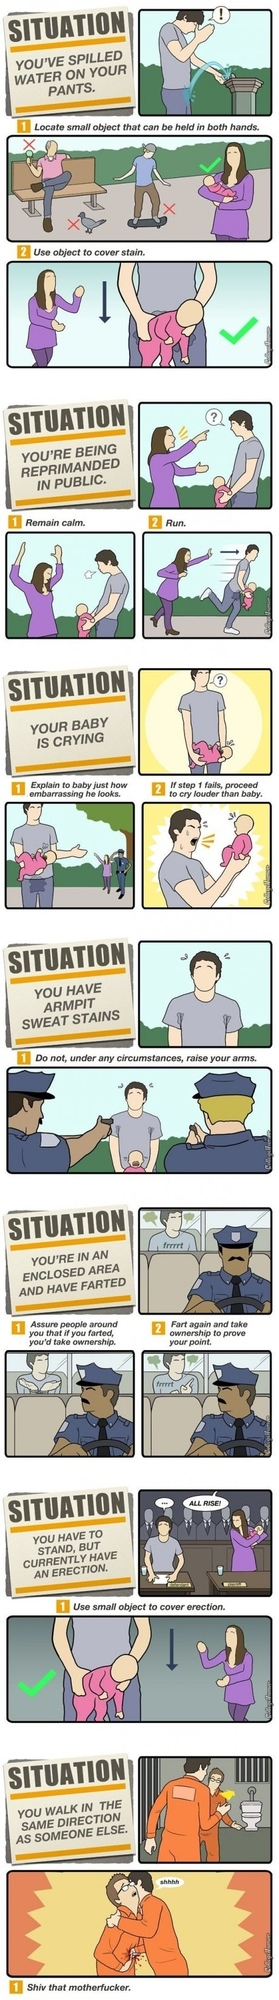 How to Get Out of Awkward Situations